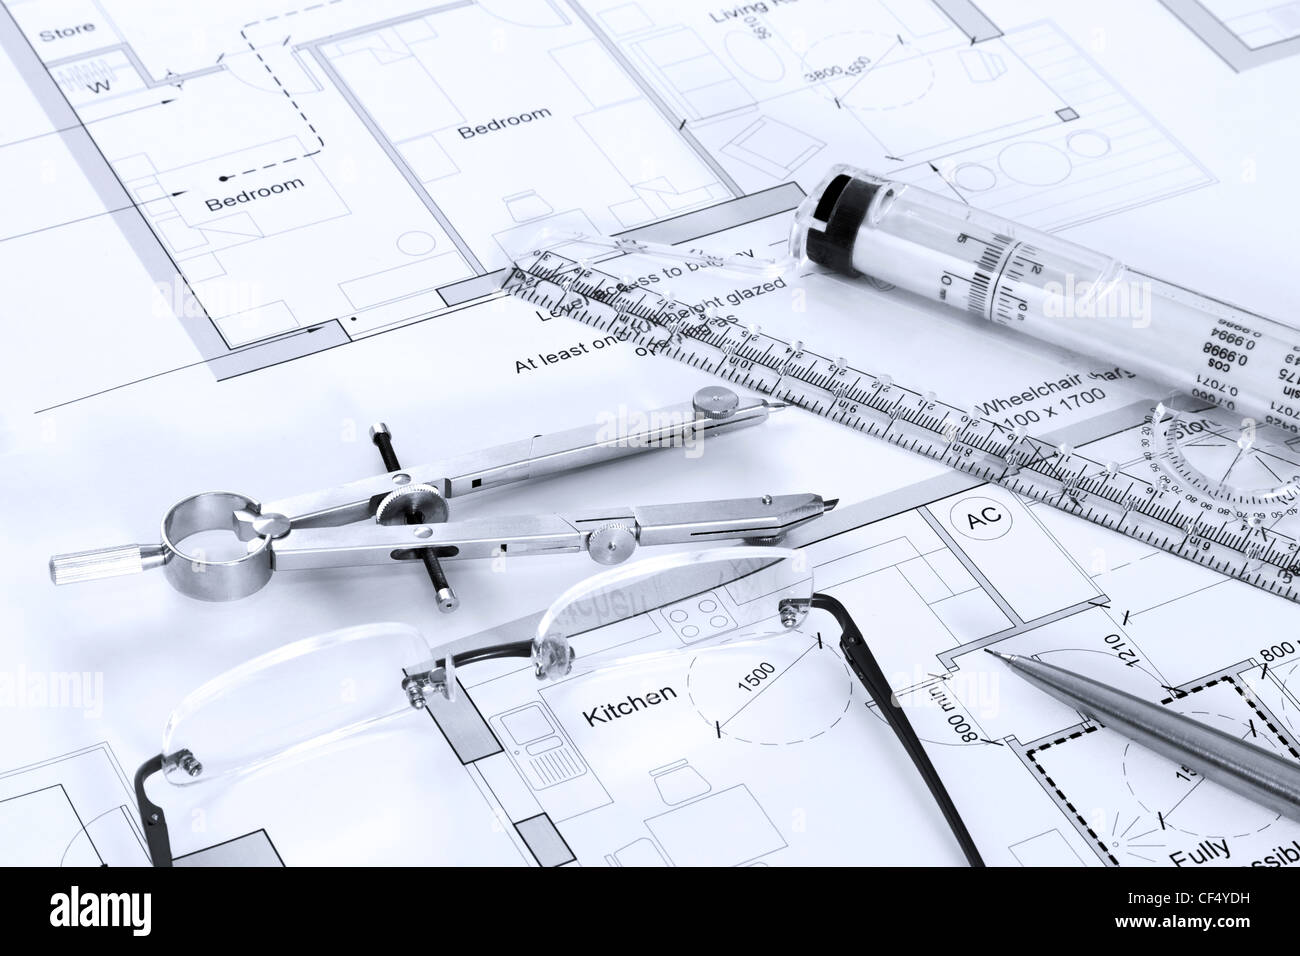 Still life photo of architectural floor plans with drawing instruments - Stock Image